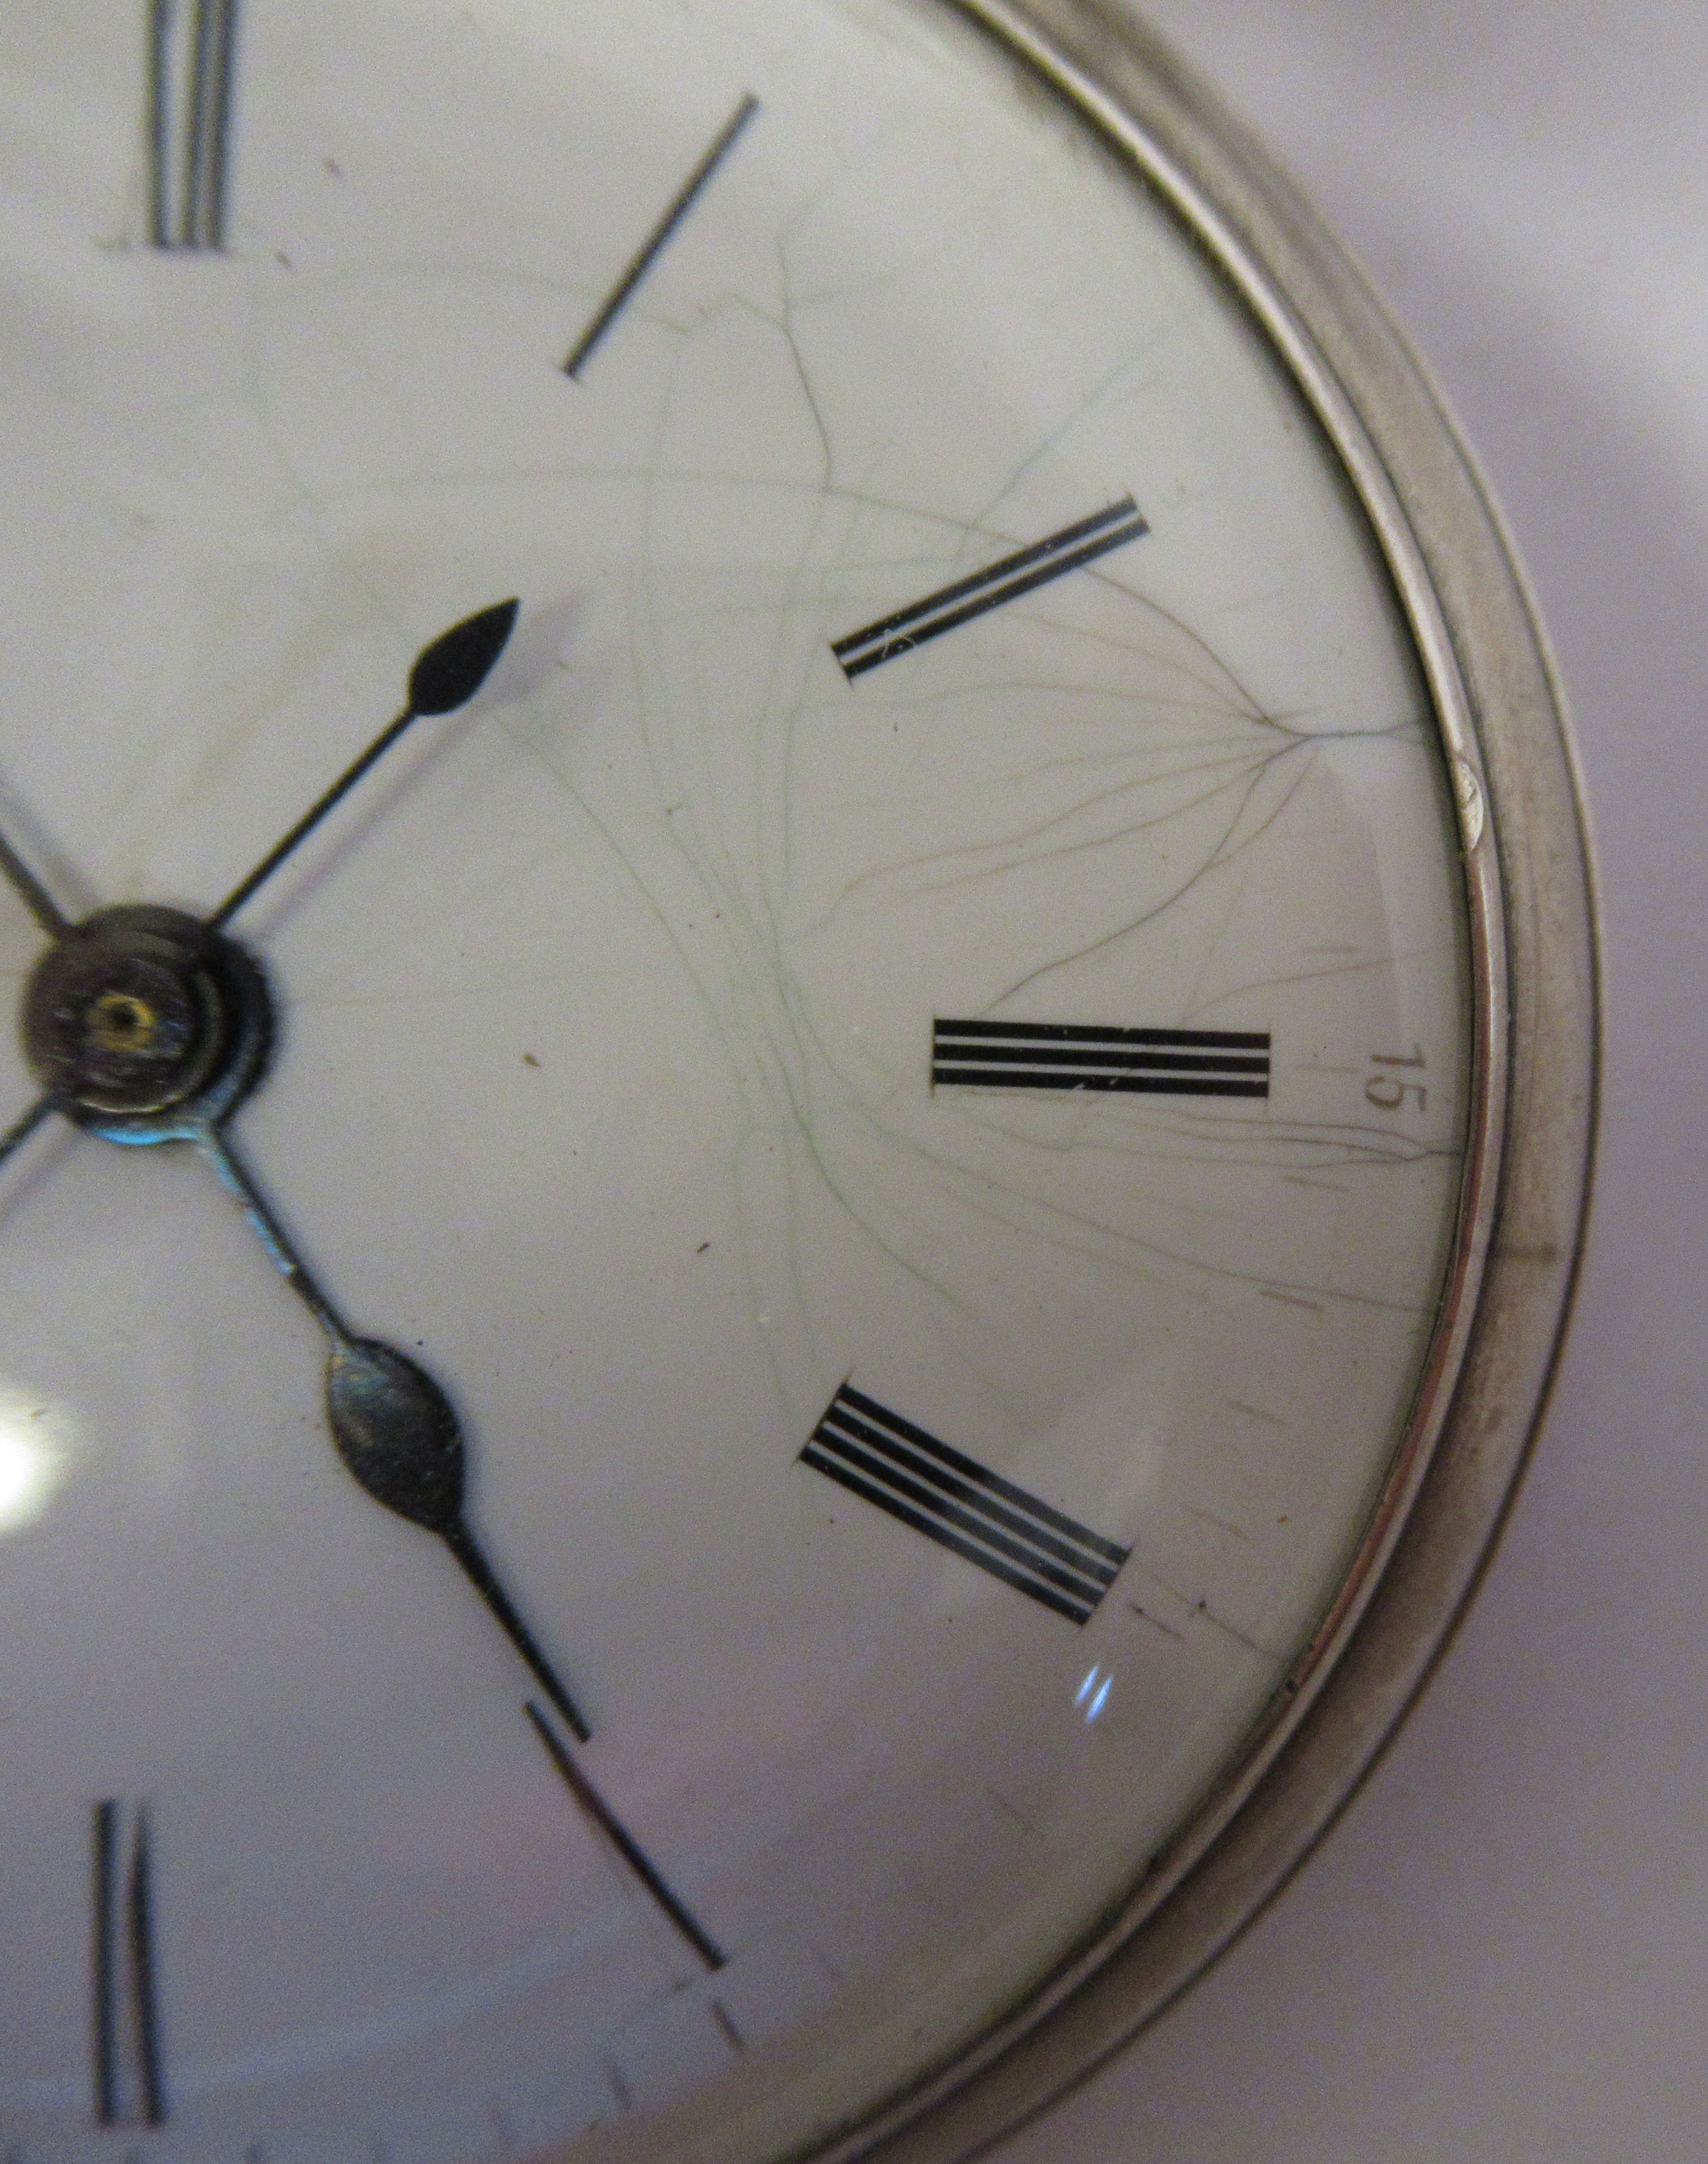 A 19thC silver cased pocket watch, the jewelled movement with sweeping seconds, protected by a - Image 2 of 4